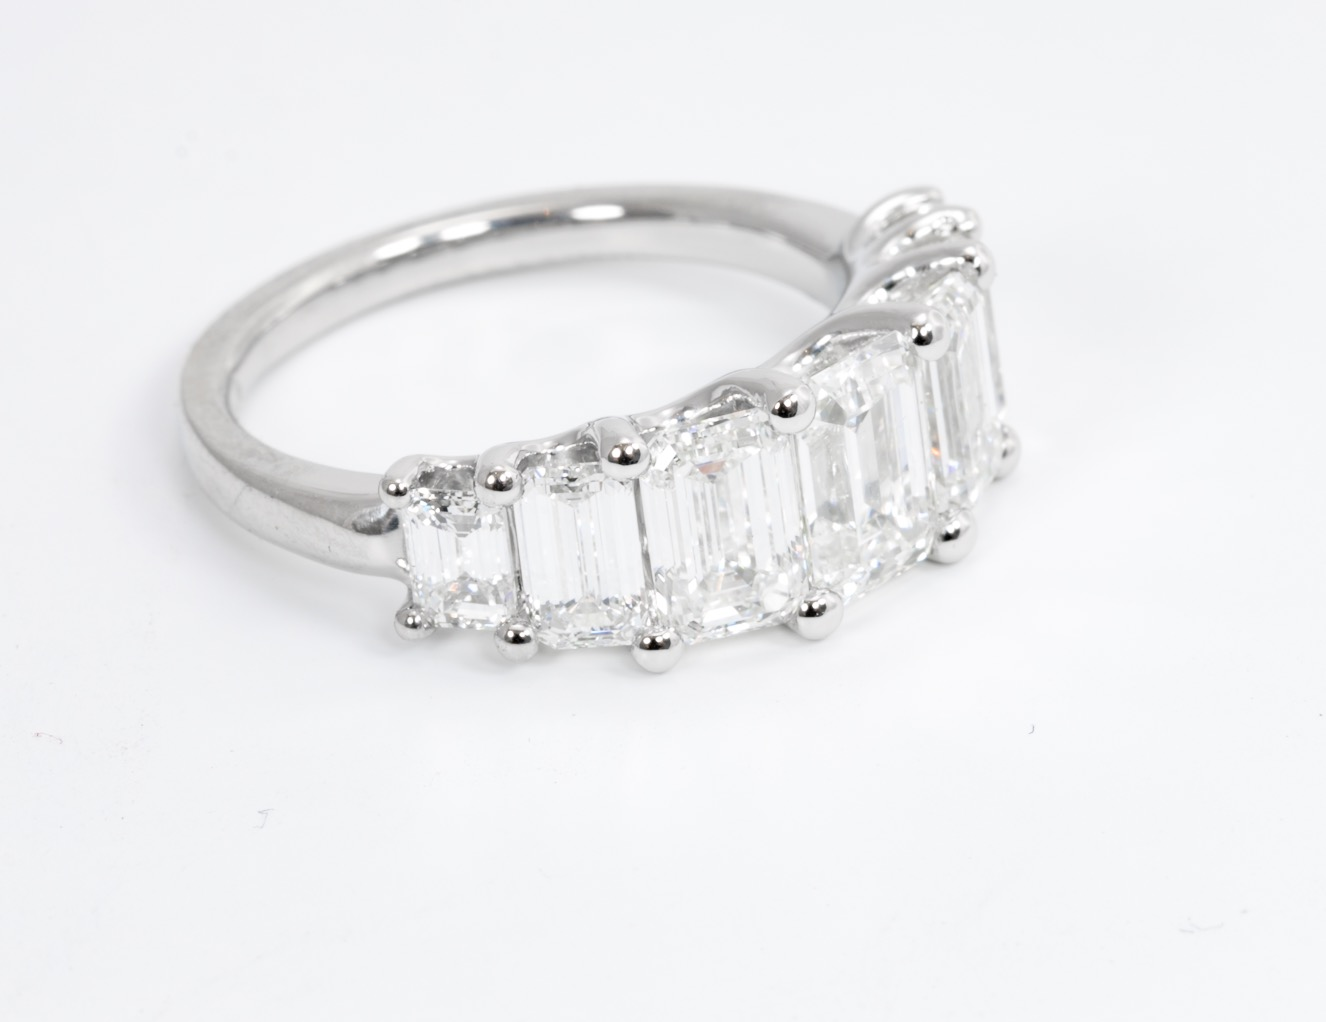 Copy of Graduating seven stone emerald cut diamond half hoop ring in U-shaped collet mount. Made in Chichester, England.